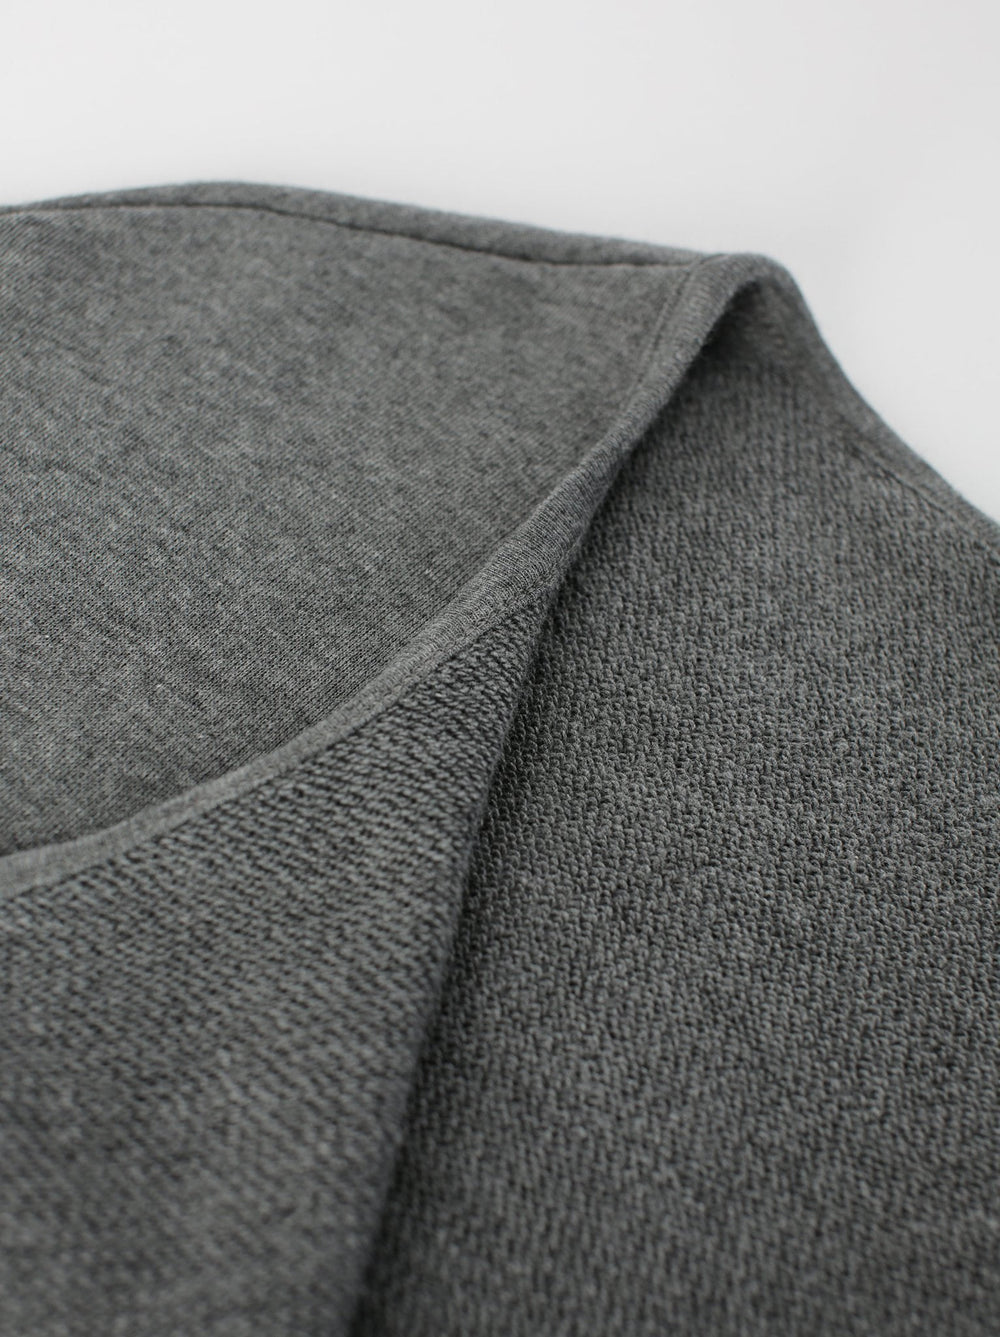 Lifestyle - Dark Heather Grey